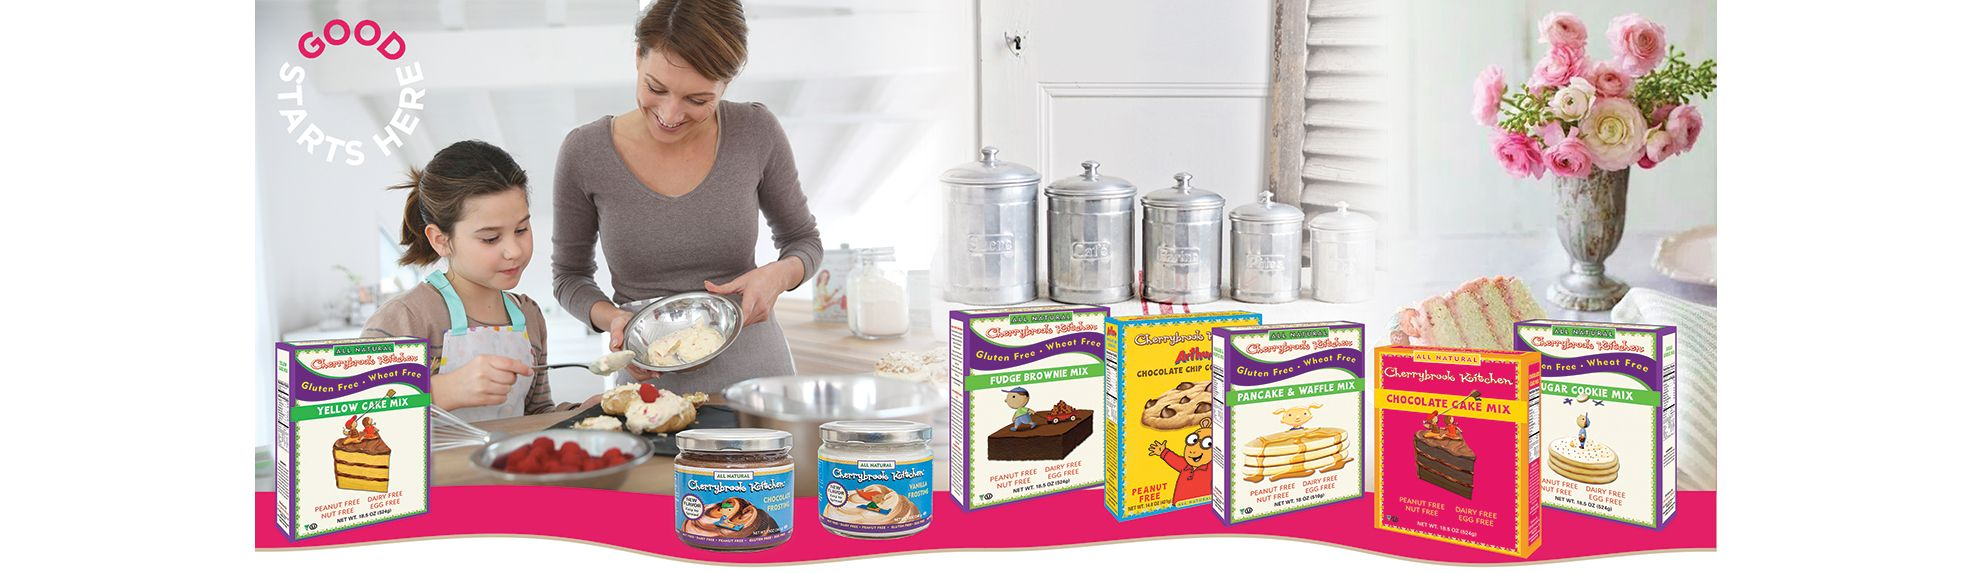 gluten chocolate amazon sugar dp kitchen mix dreams free cookie ounce cake cherrybrook com